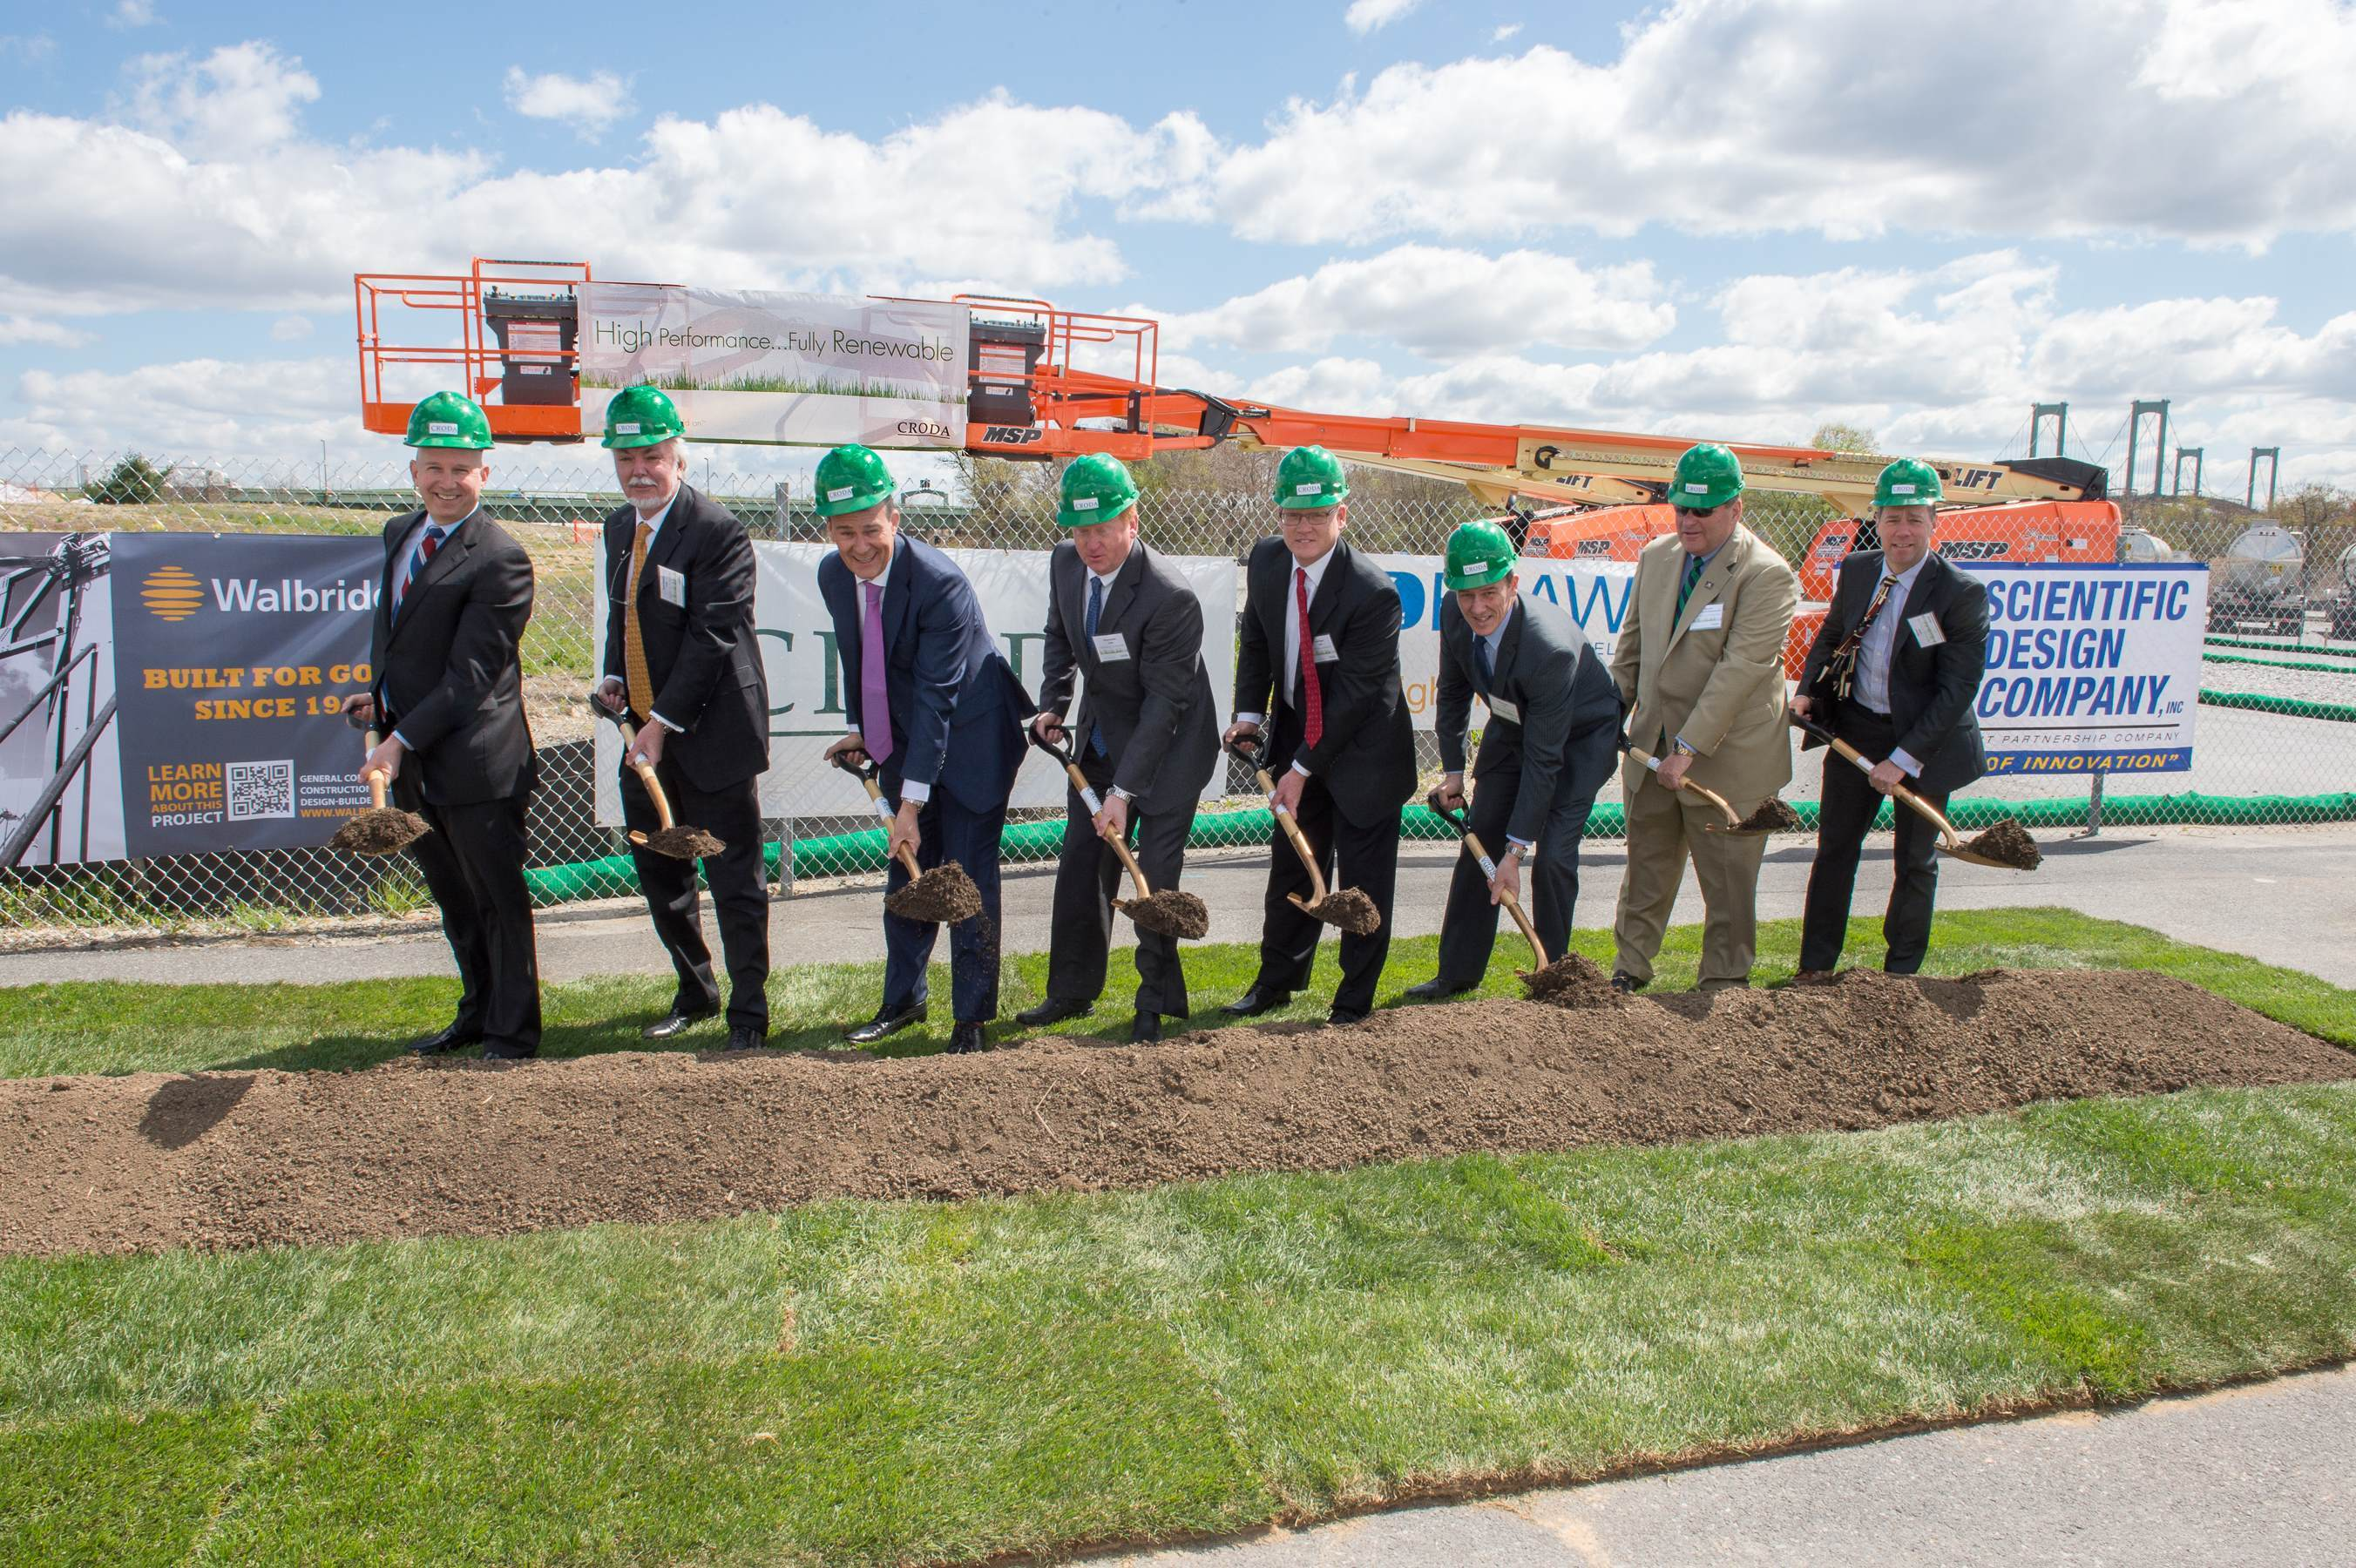 ceremonial groundbreaking on Croda's North American £120m capital investment